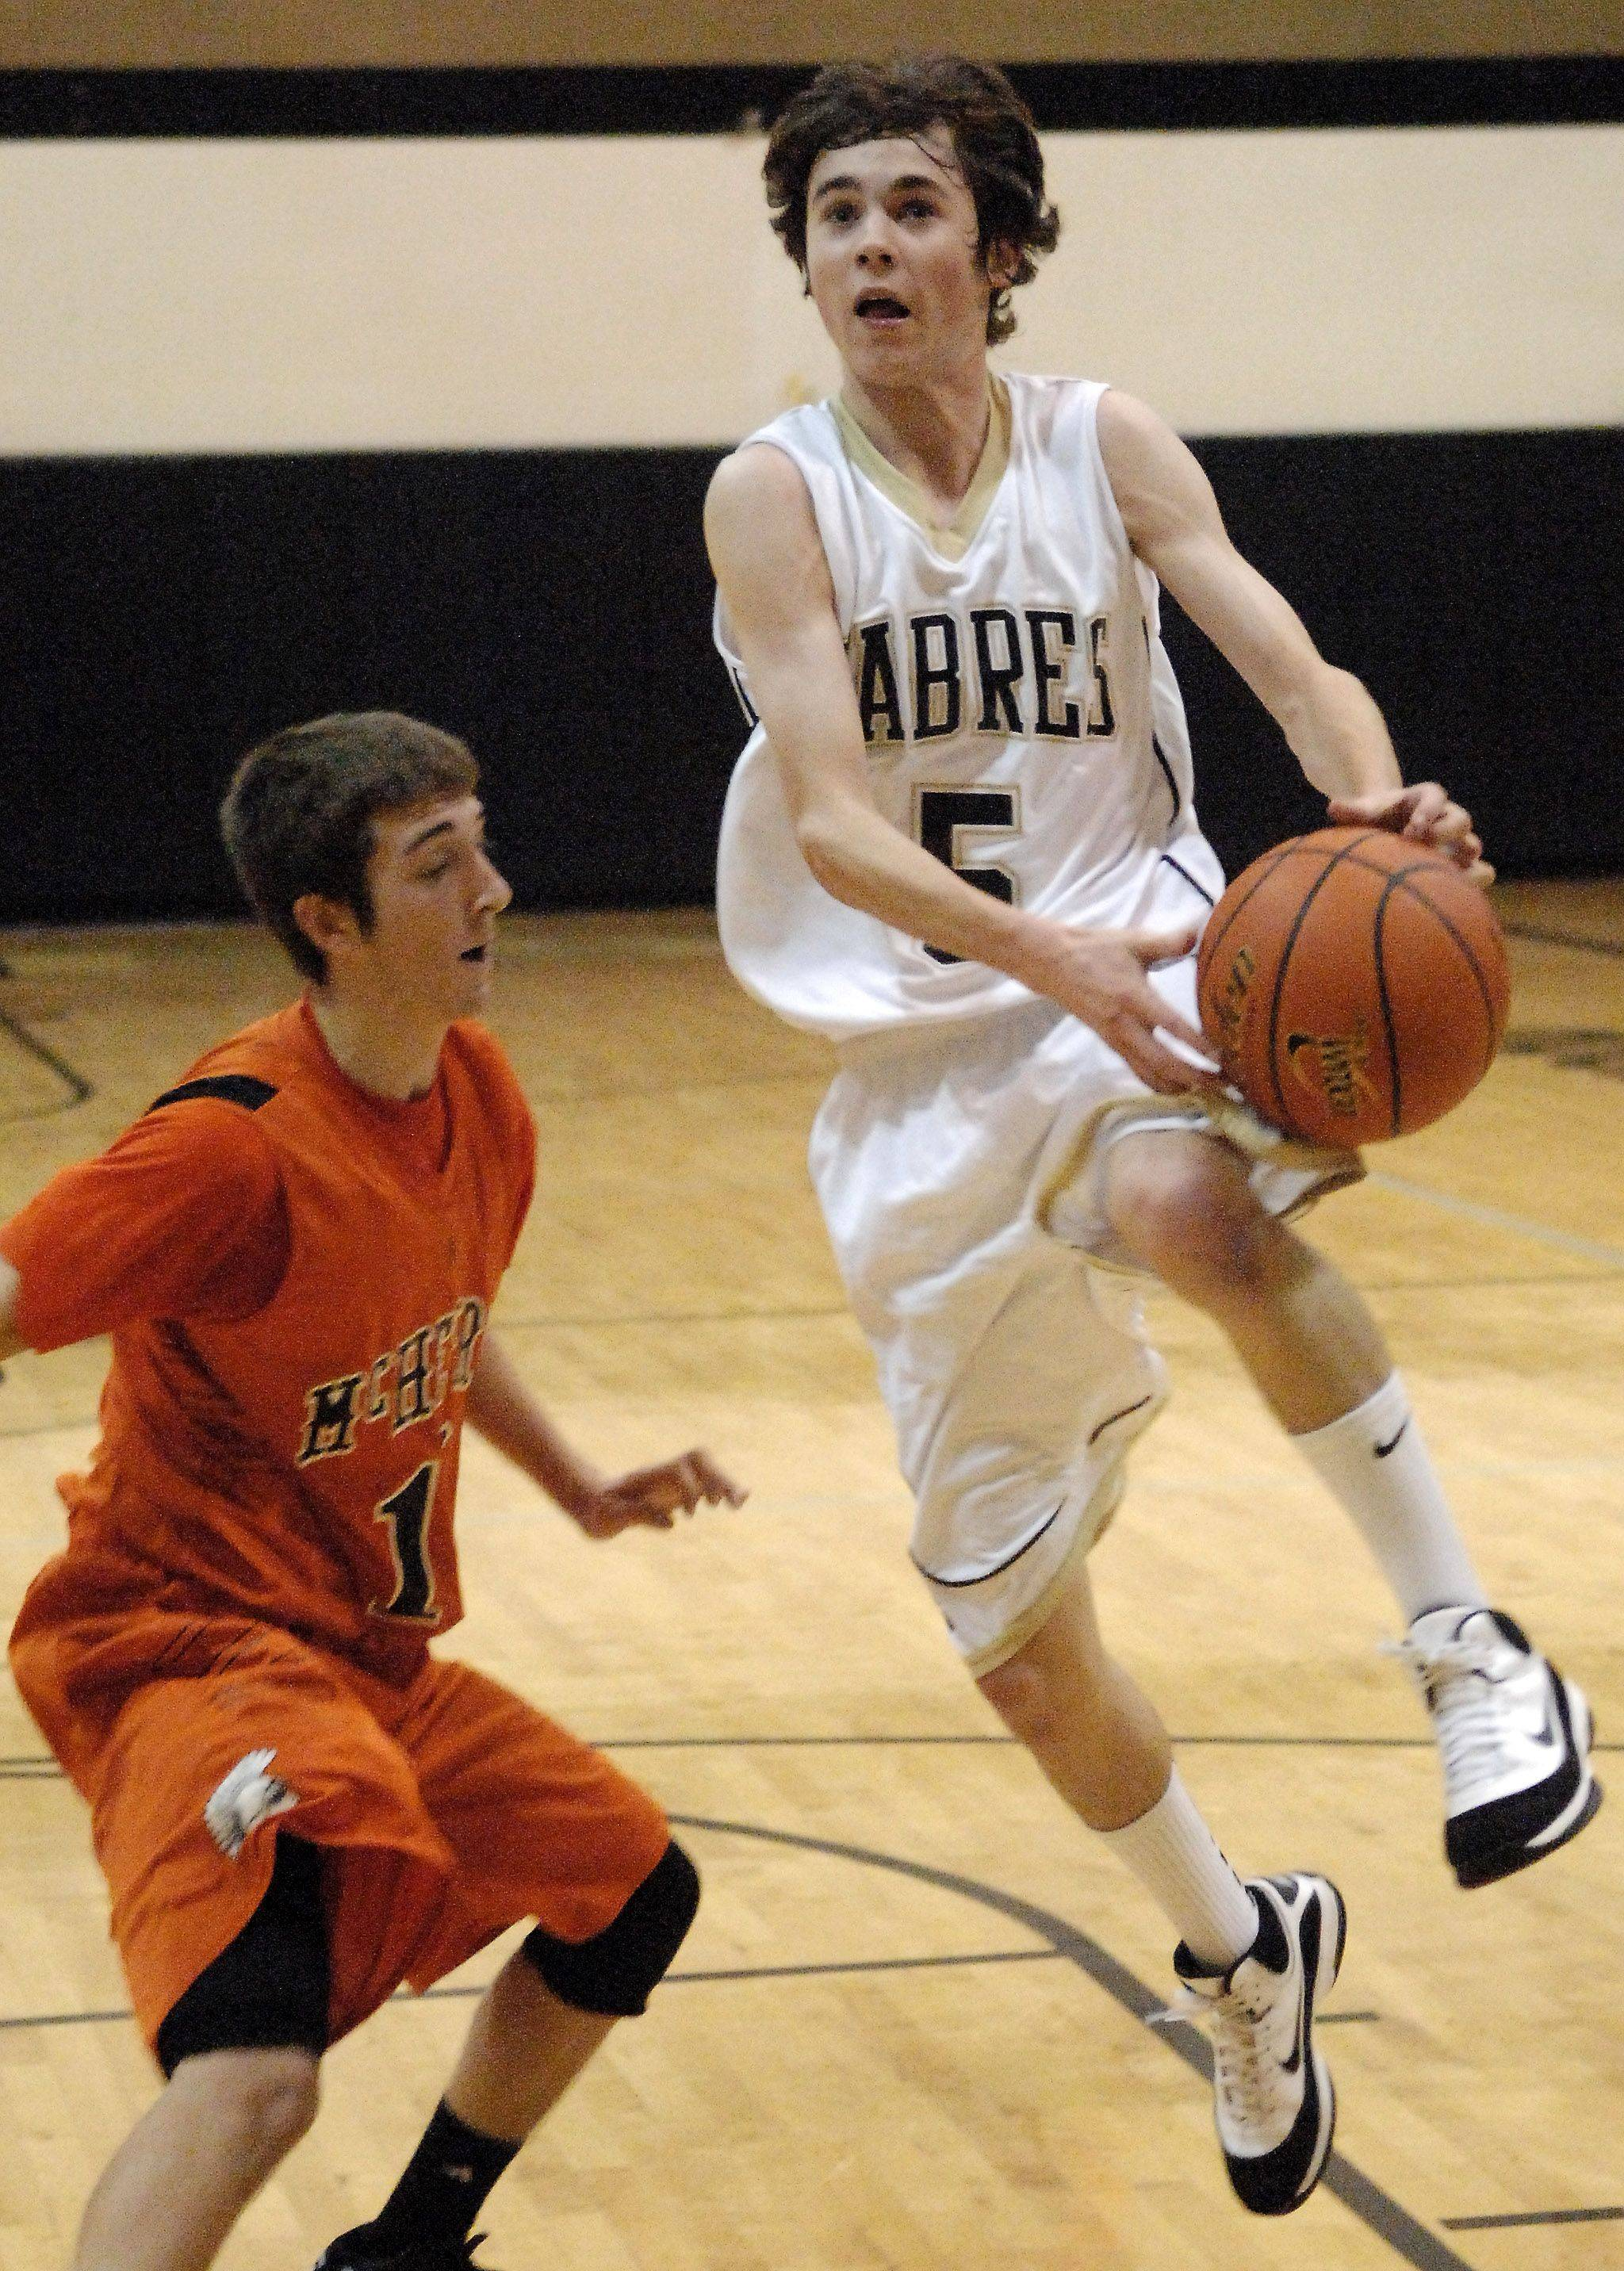 Streamwood's Brent Kiesel drives to the basket past McHenry's Danny Glick during Thursday's game at Streamwood.